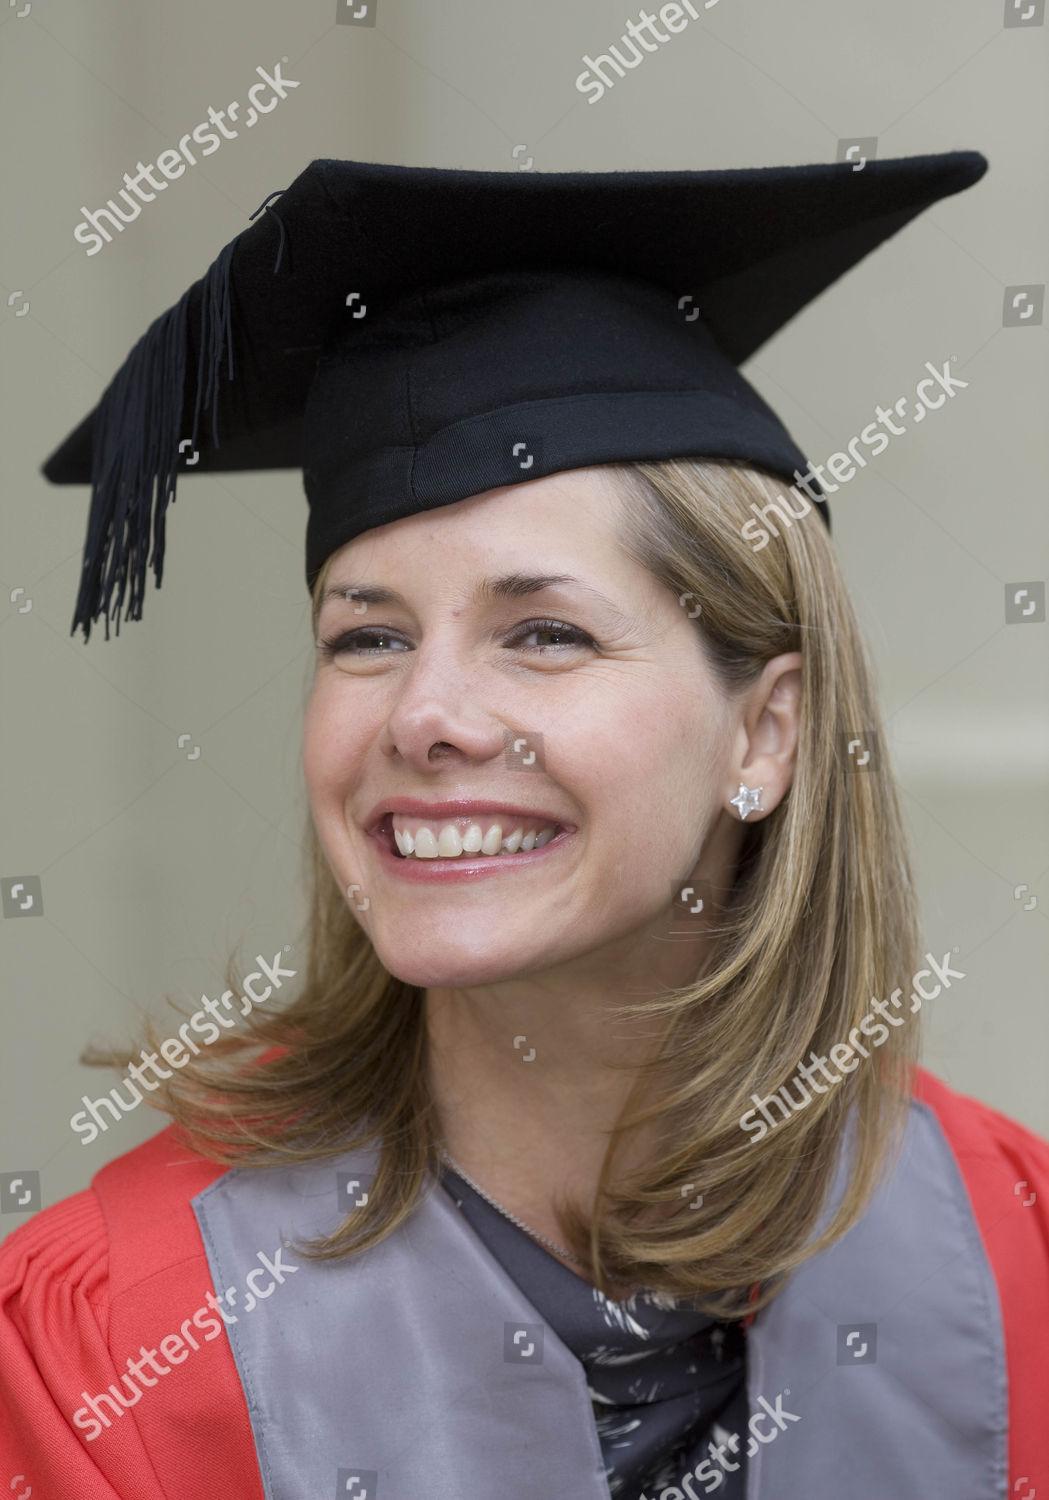 Ballerina Darcey Bussell receives honorary Doctor of Letters degree from Oxford University, Britain - 18